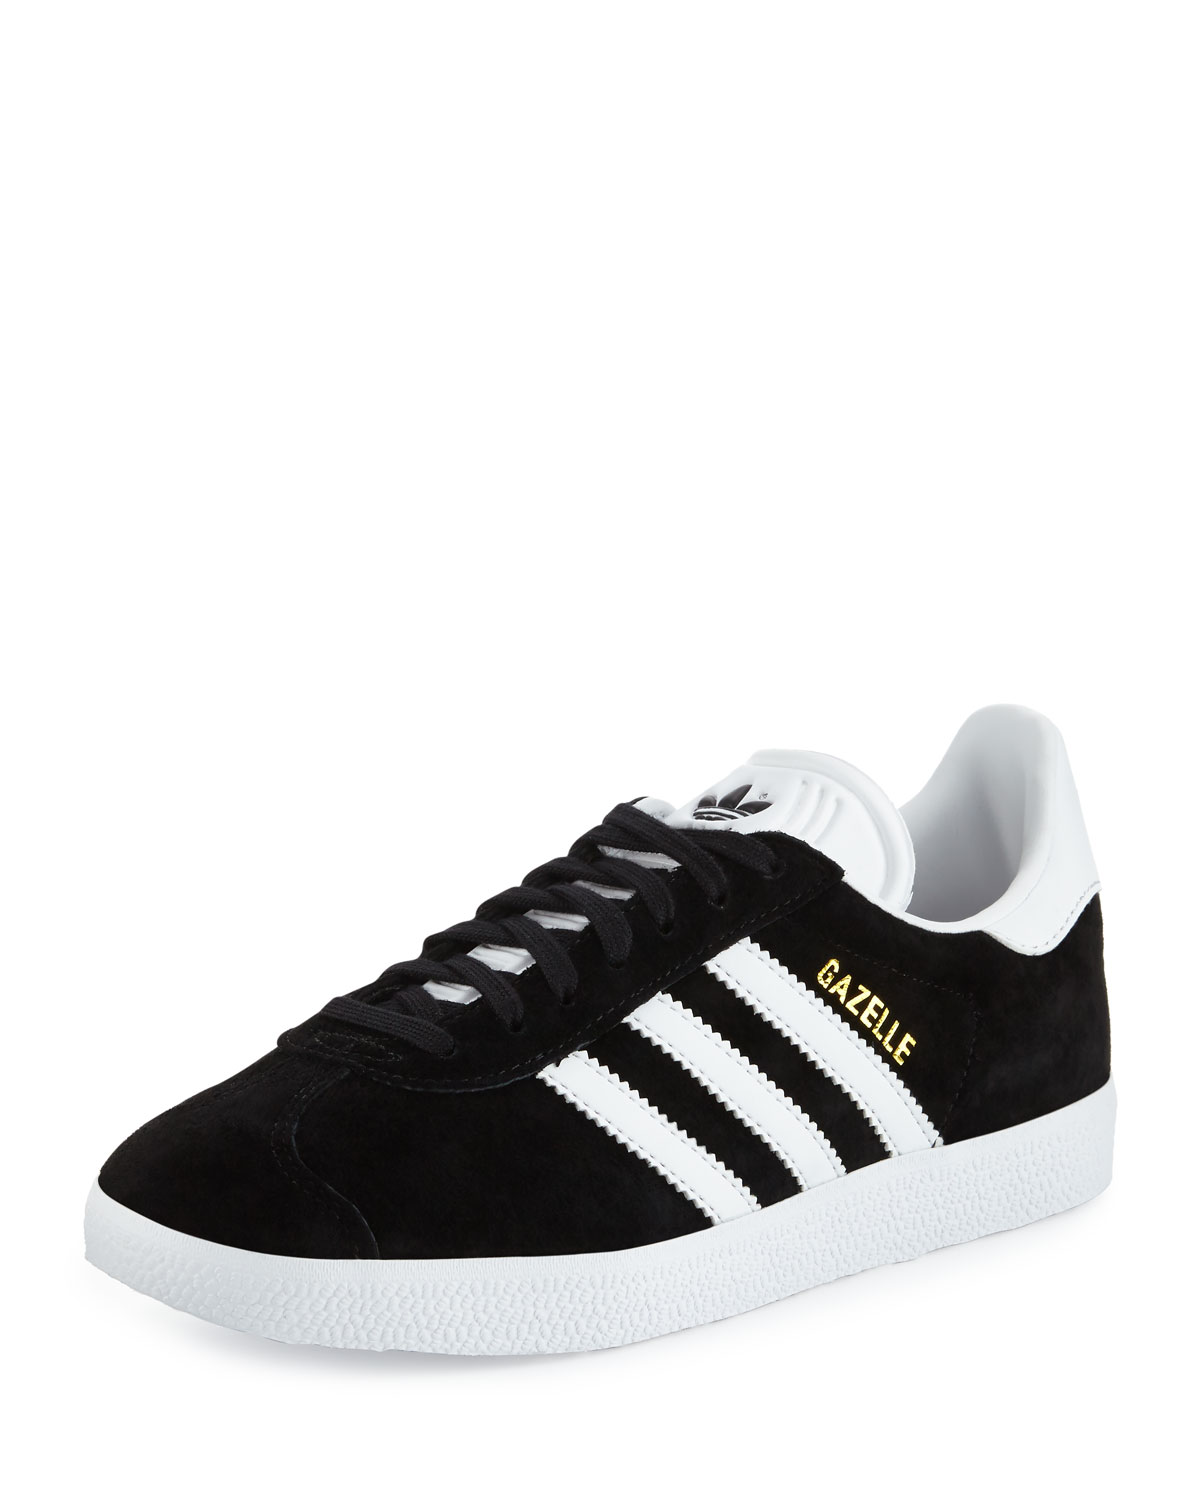 46fc986c85 Gazelle Original Suede Sneakers, Black/White